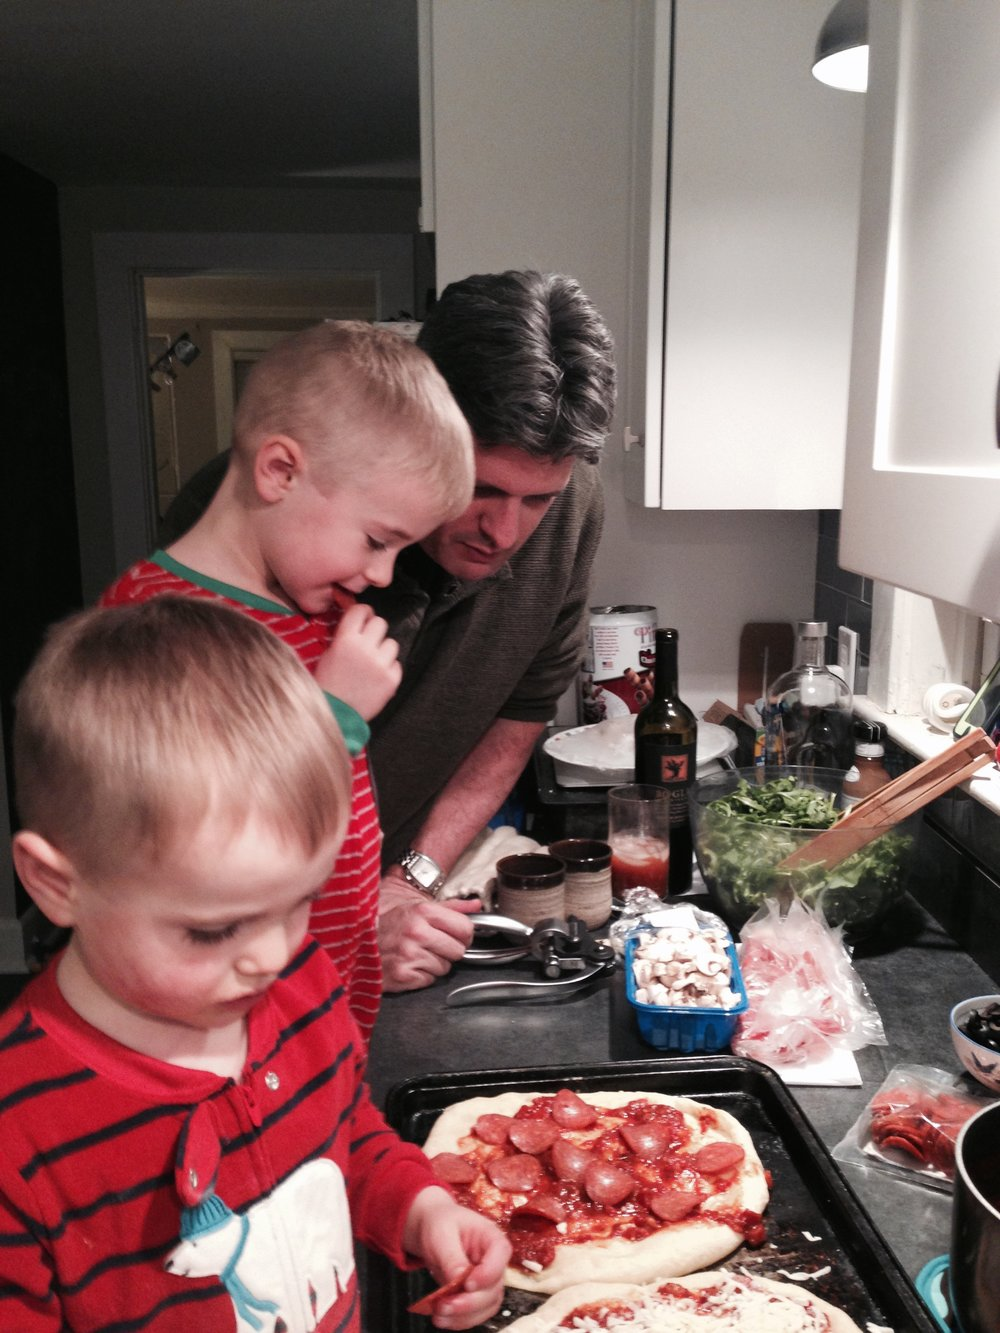 Making pizza with our nephews